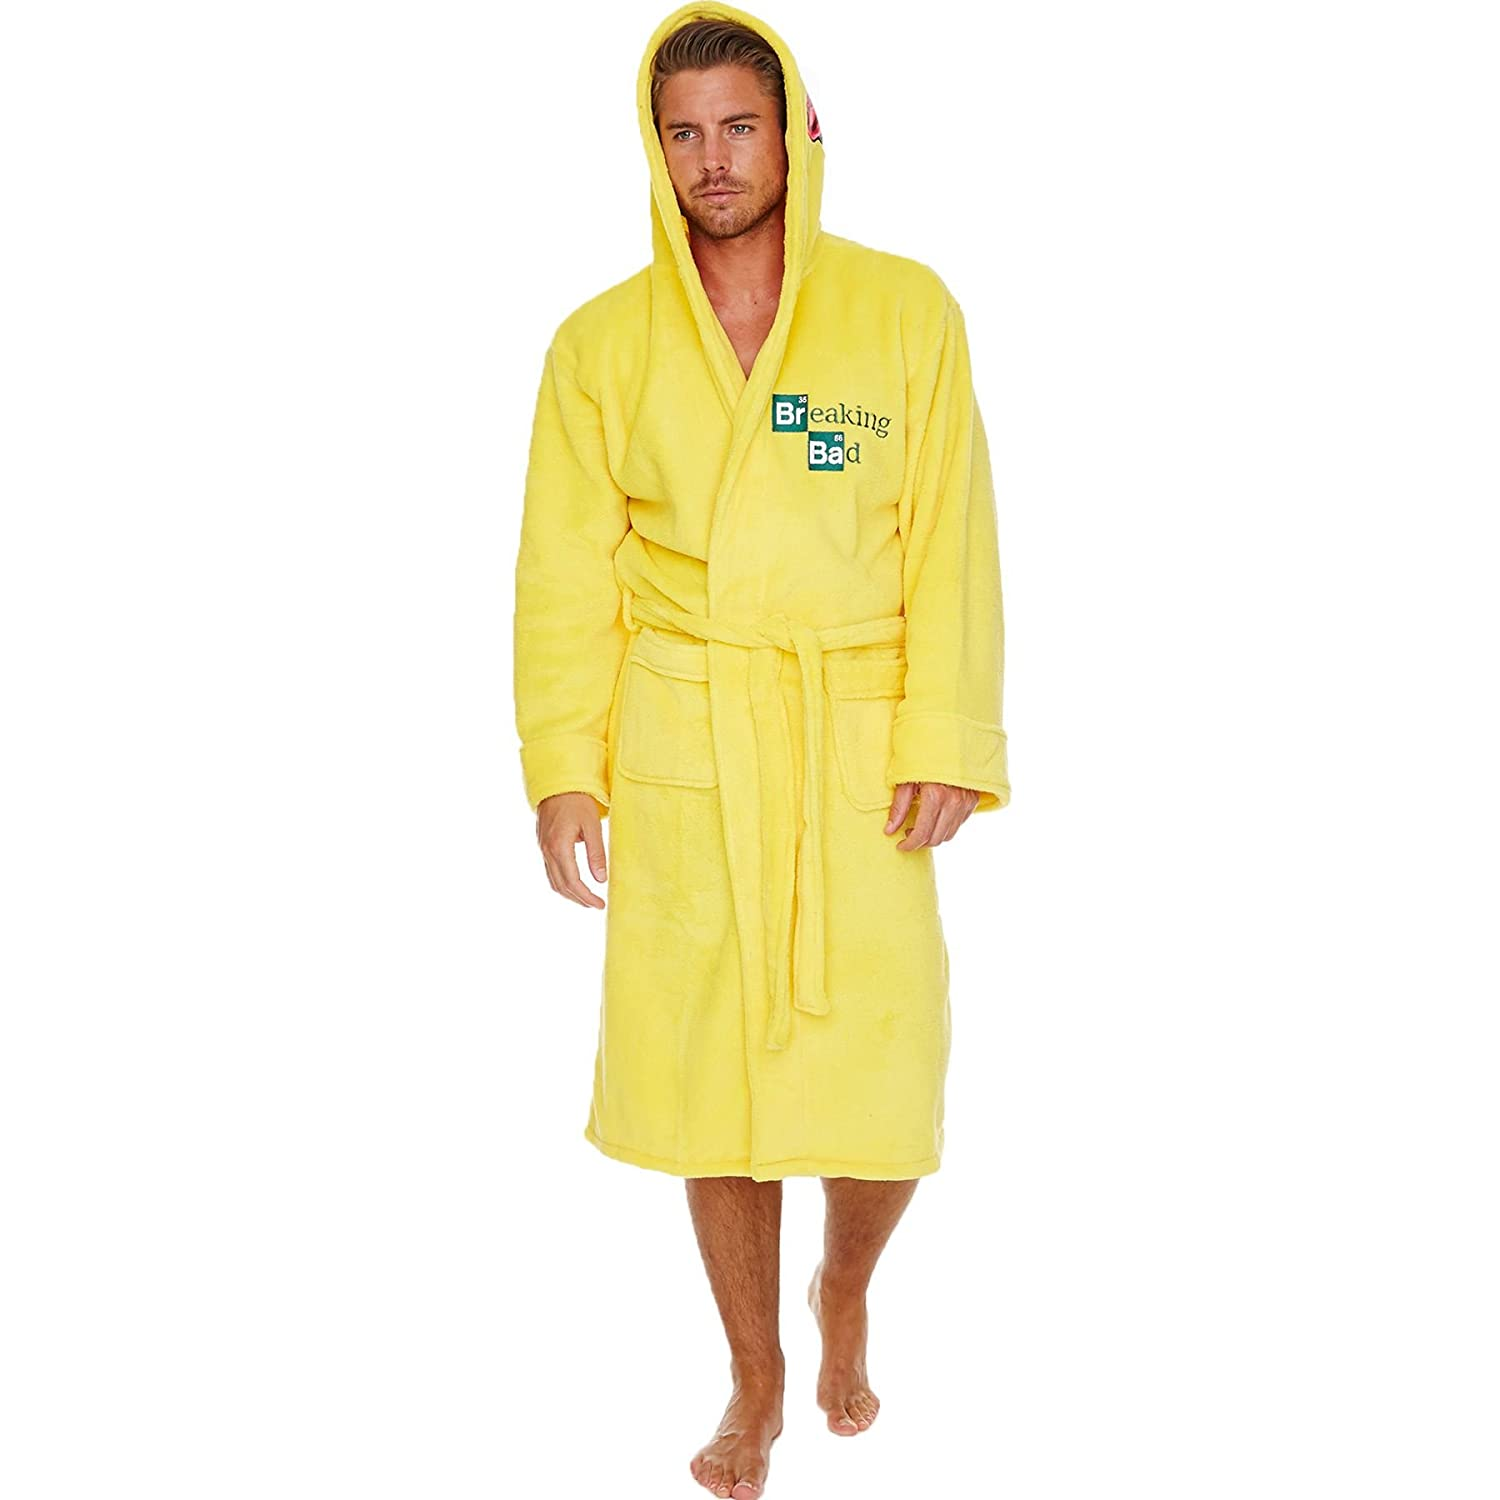 Breaking Bad 'Cooksuit' Yellow Hooded 100% Polyester One Size Bathrobe